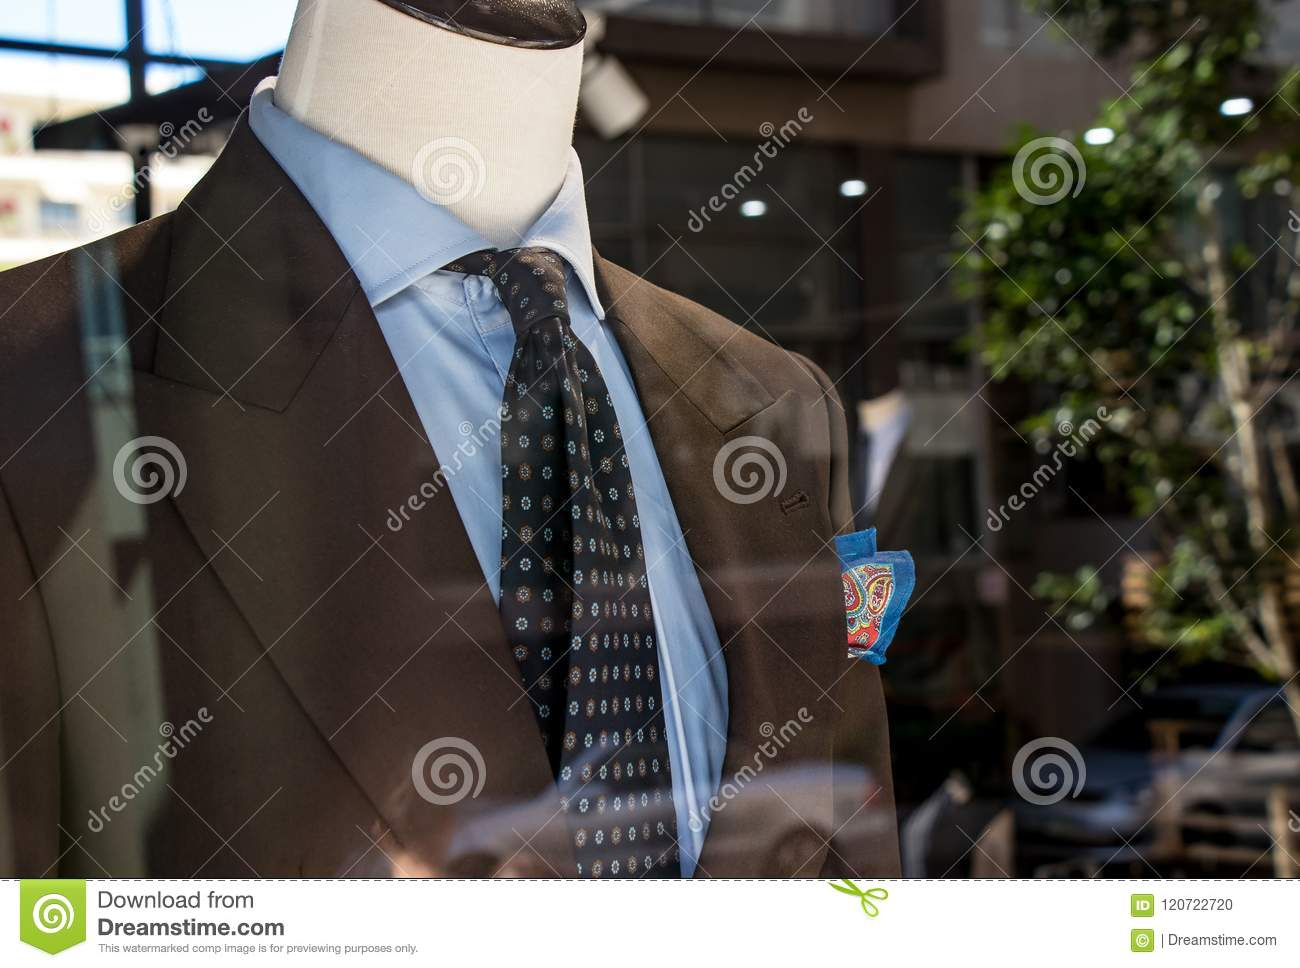 fcbf2d330 Shop window of mens tailor shop showing a mannequin in a brown tailored suit  and blue tie. Bright blue pocket handkerchief.